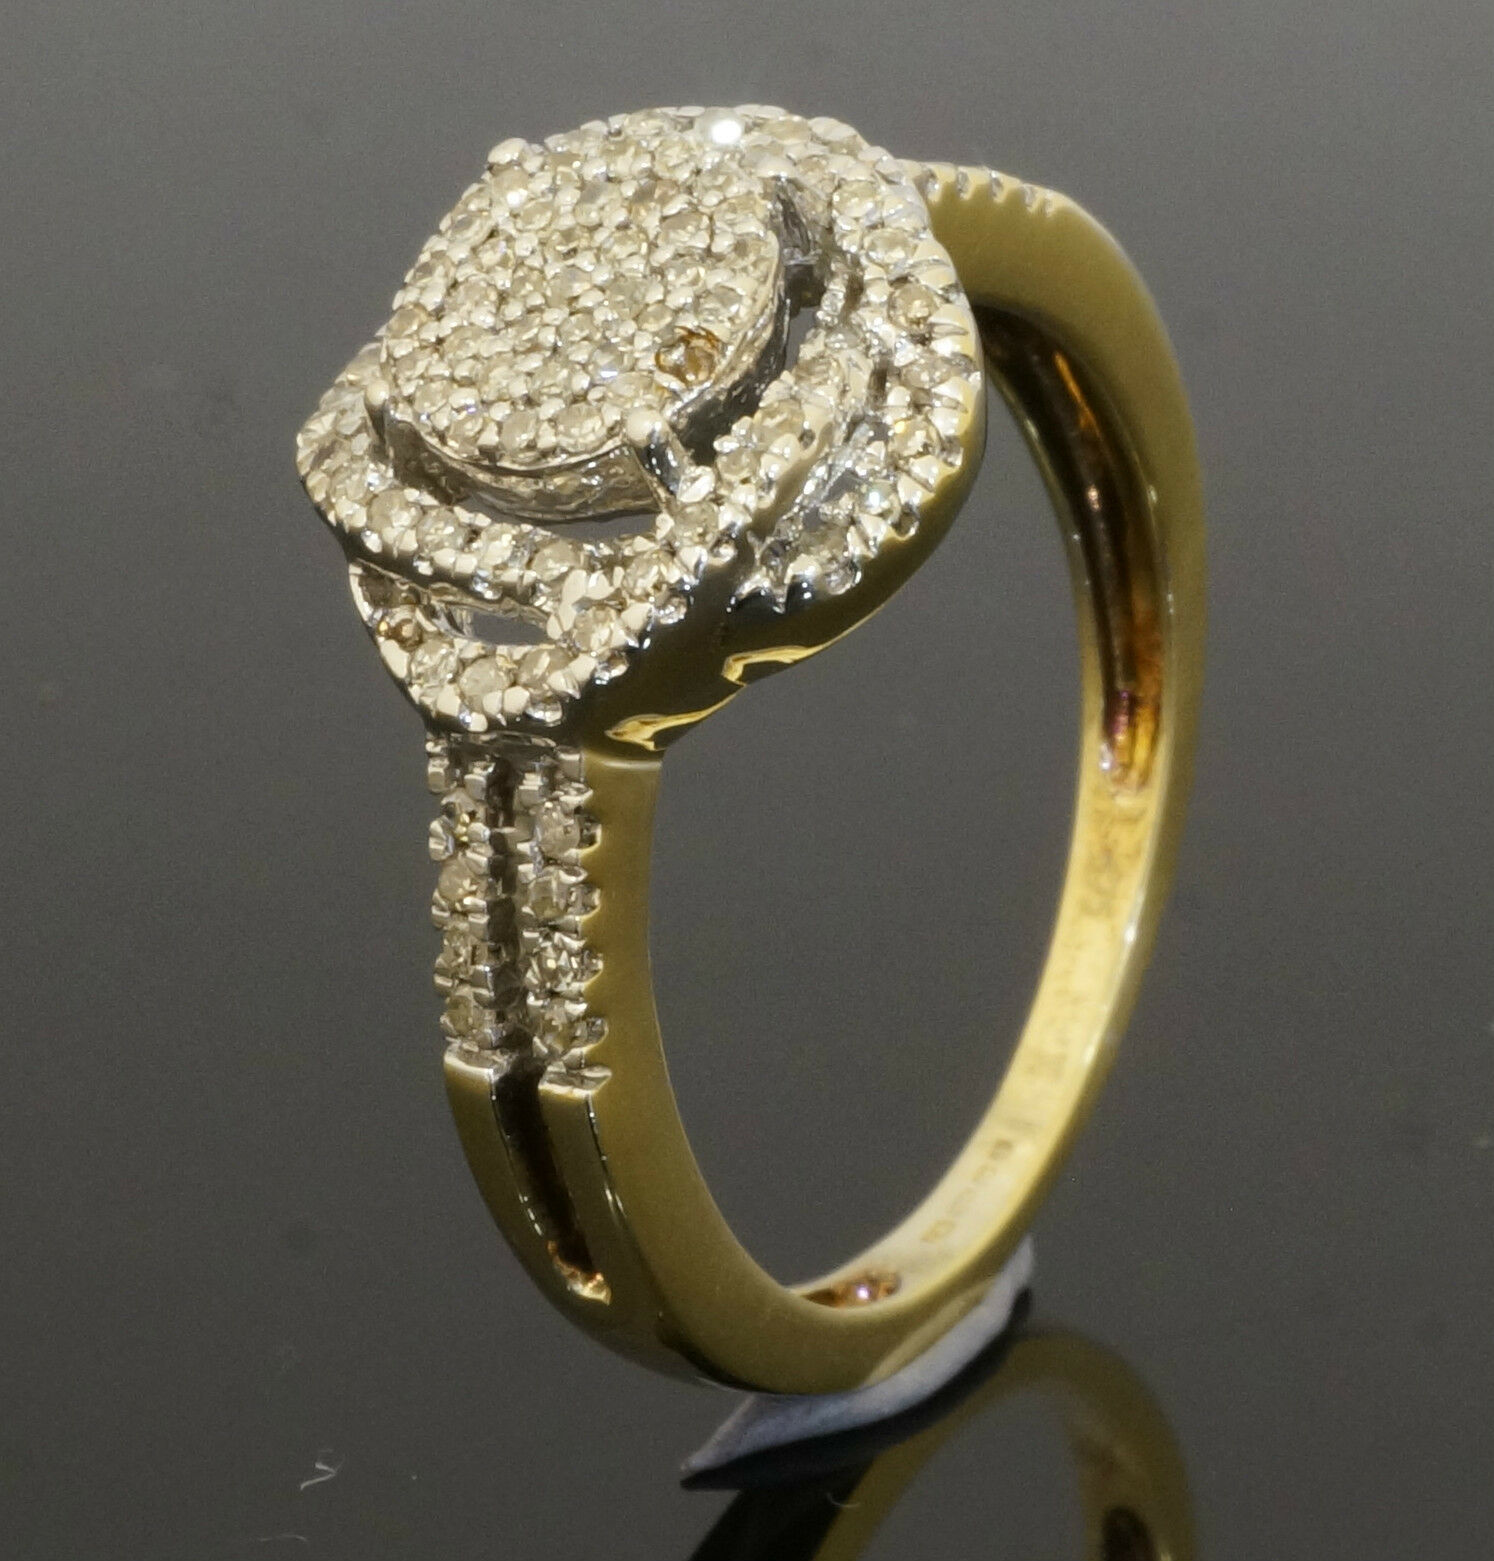 j carat diamond gold d williams engagement action rings shop ring product brilliant details solitaire cut show white